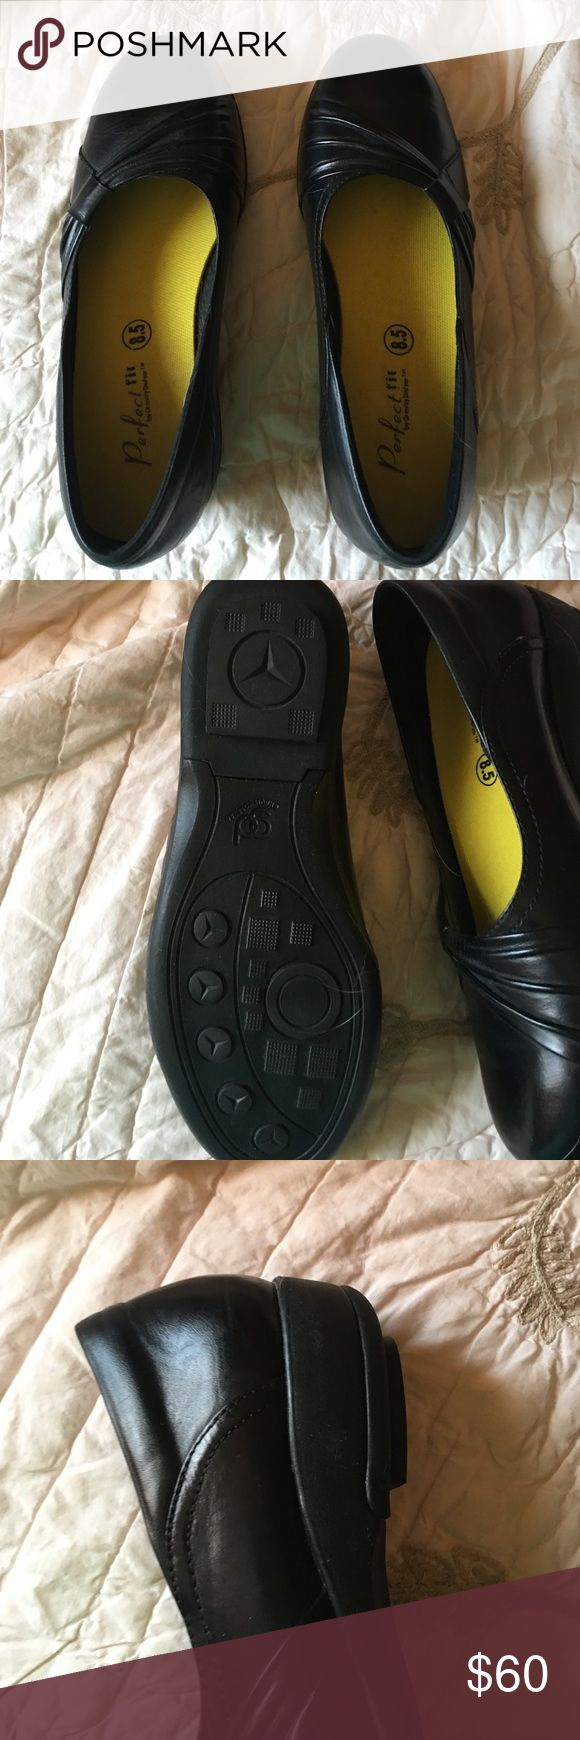 Orthopedic shoes never worn Orthopedic shoes Shoes Flats & Loafers